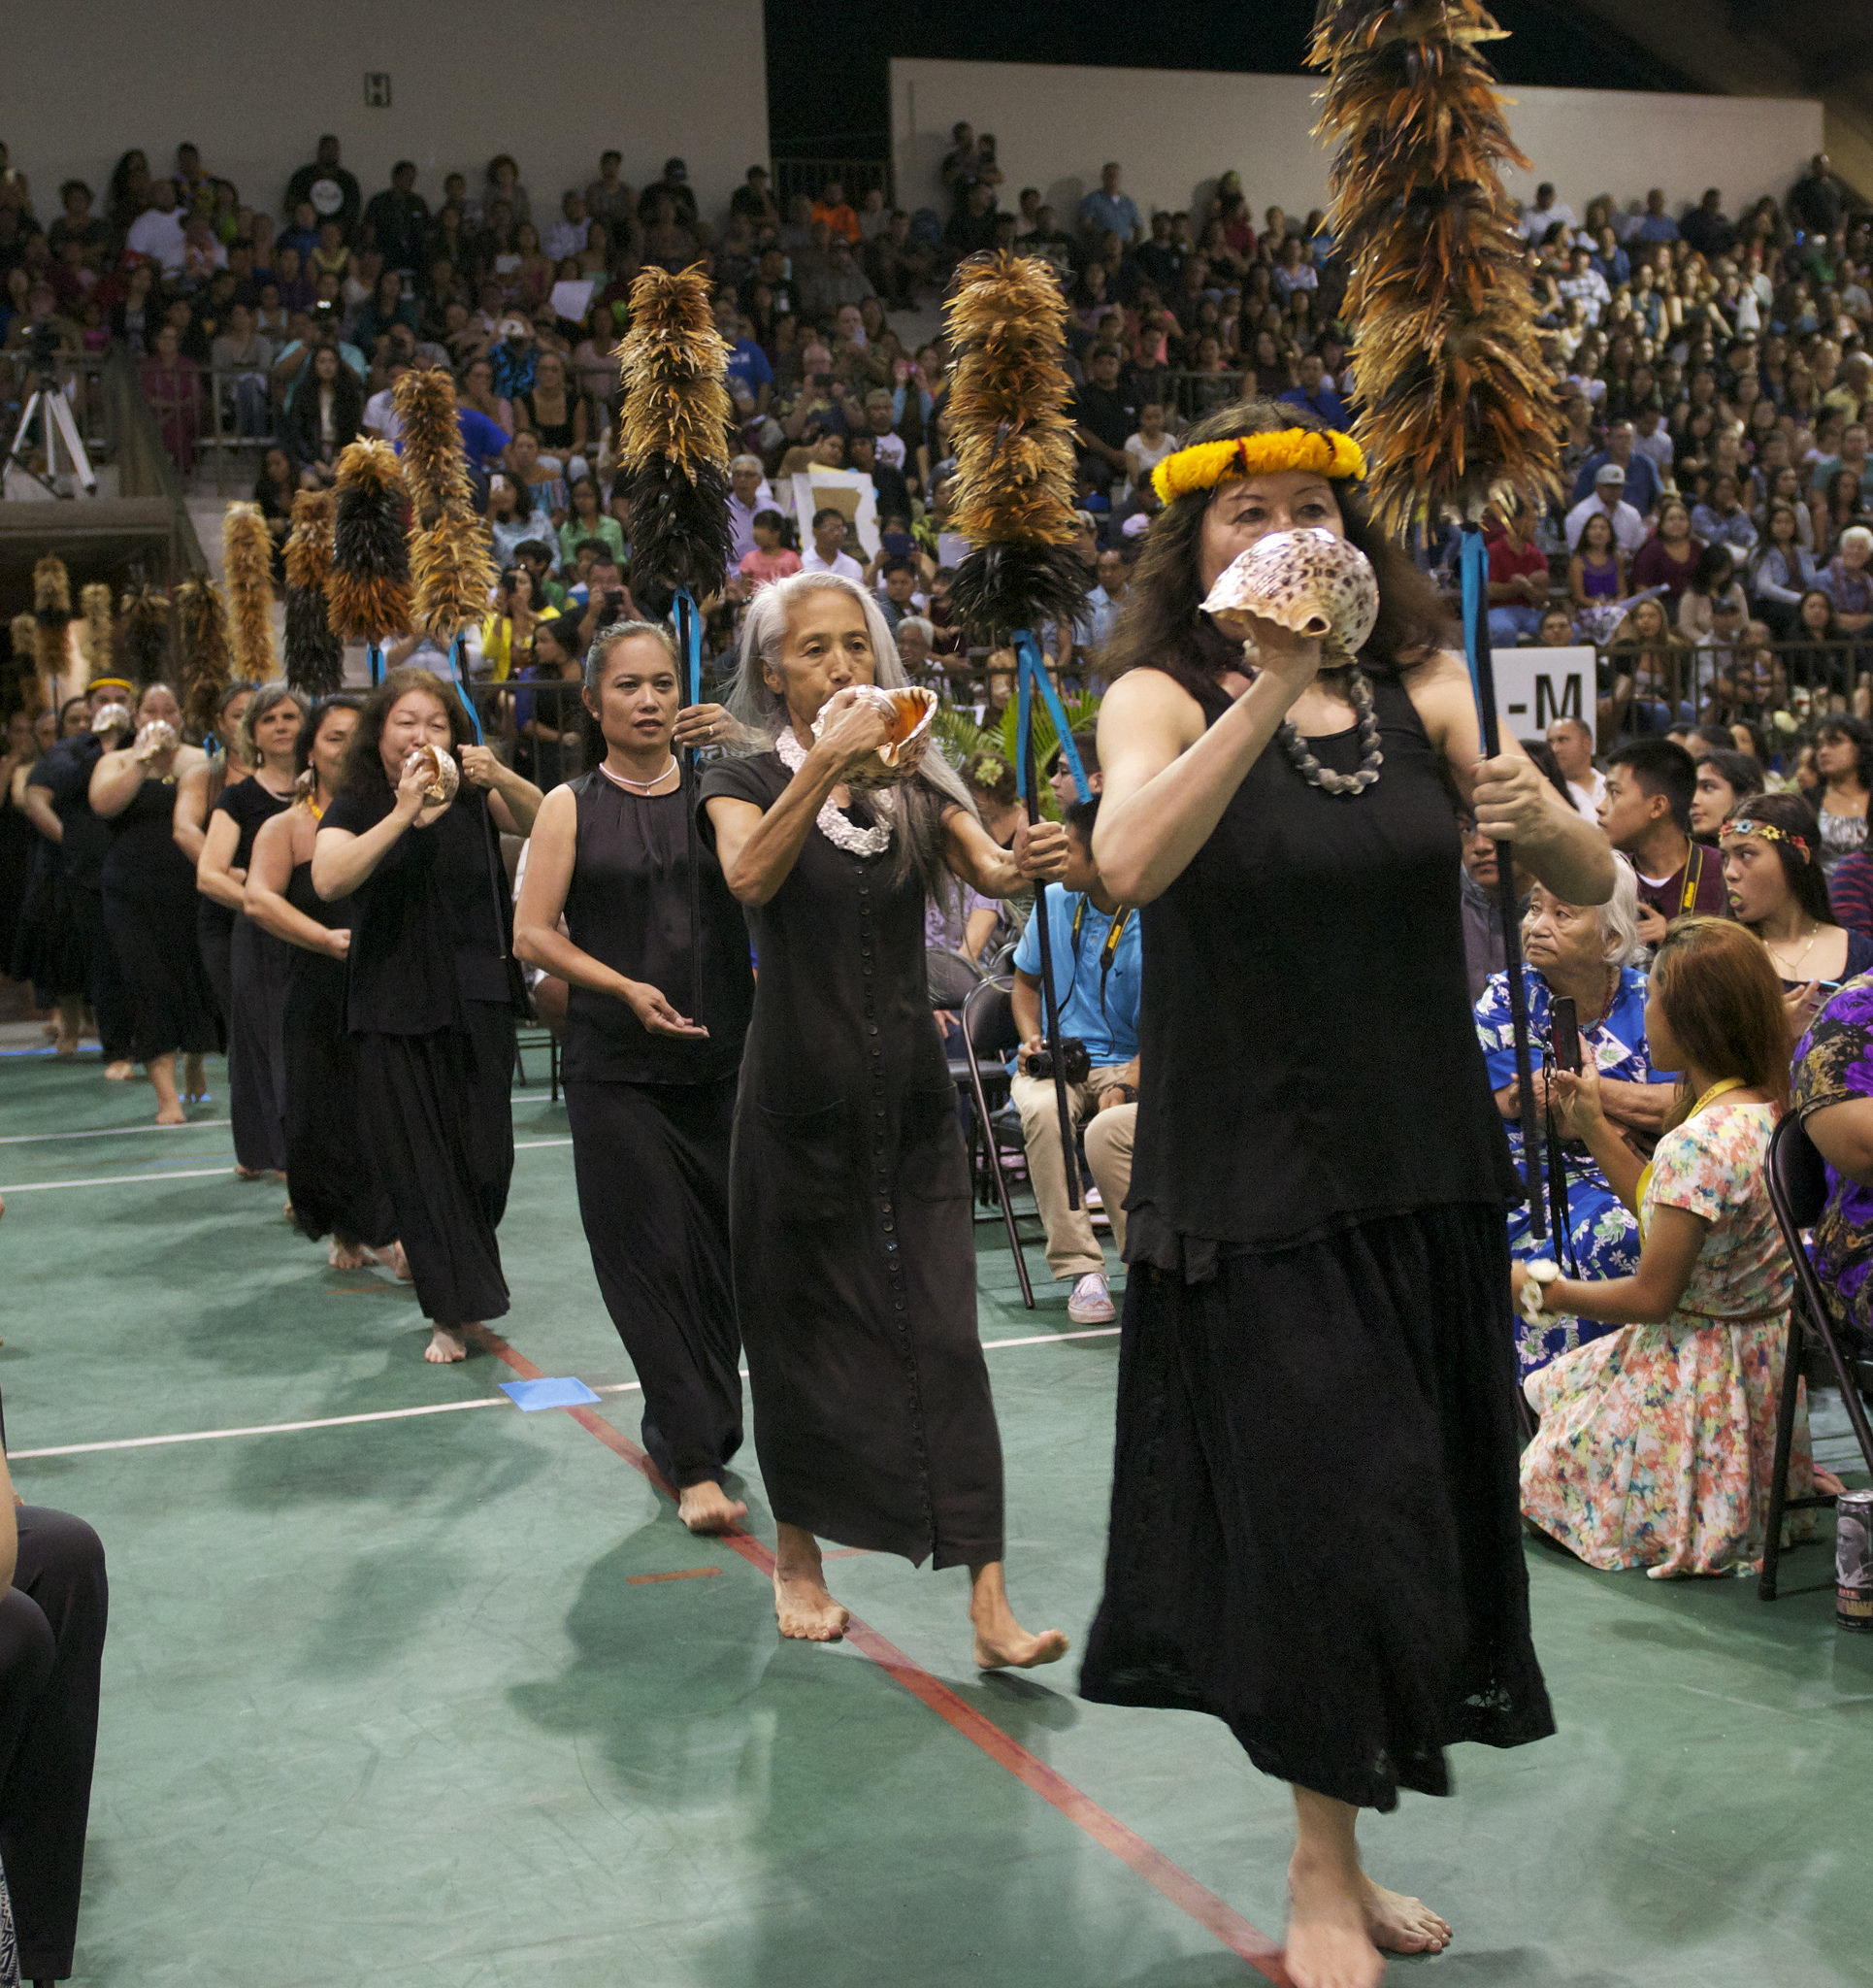 Trina Nahm-Mijo was in the first cohort of the Kūkū`enas, a mixed group of faculty, staff, and students started by Dr. Taupōouri Tangarō in 2009 to assist in Hawaiian protocols like Kīpaepae, pictured here at 2016 Hawai'i CC Graduation.